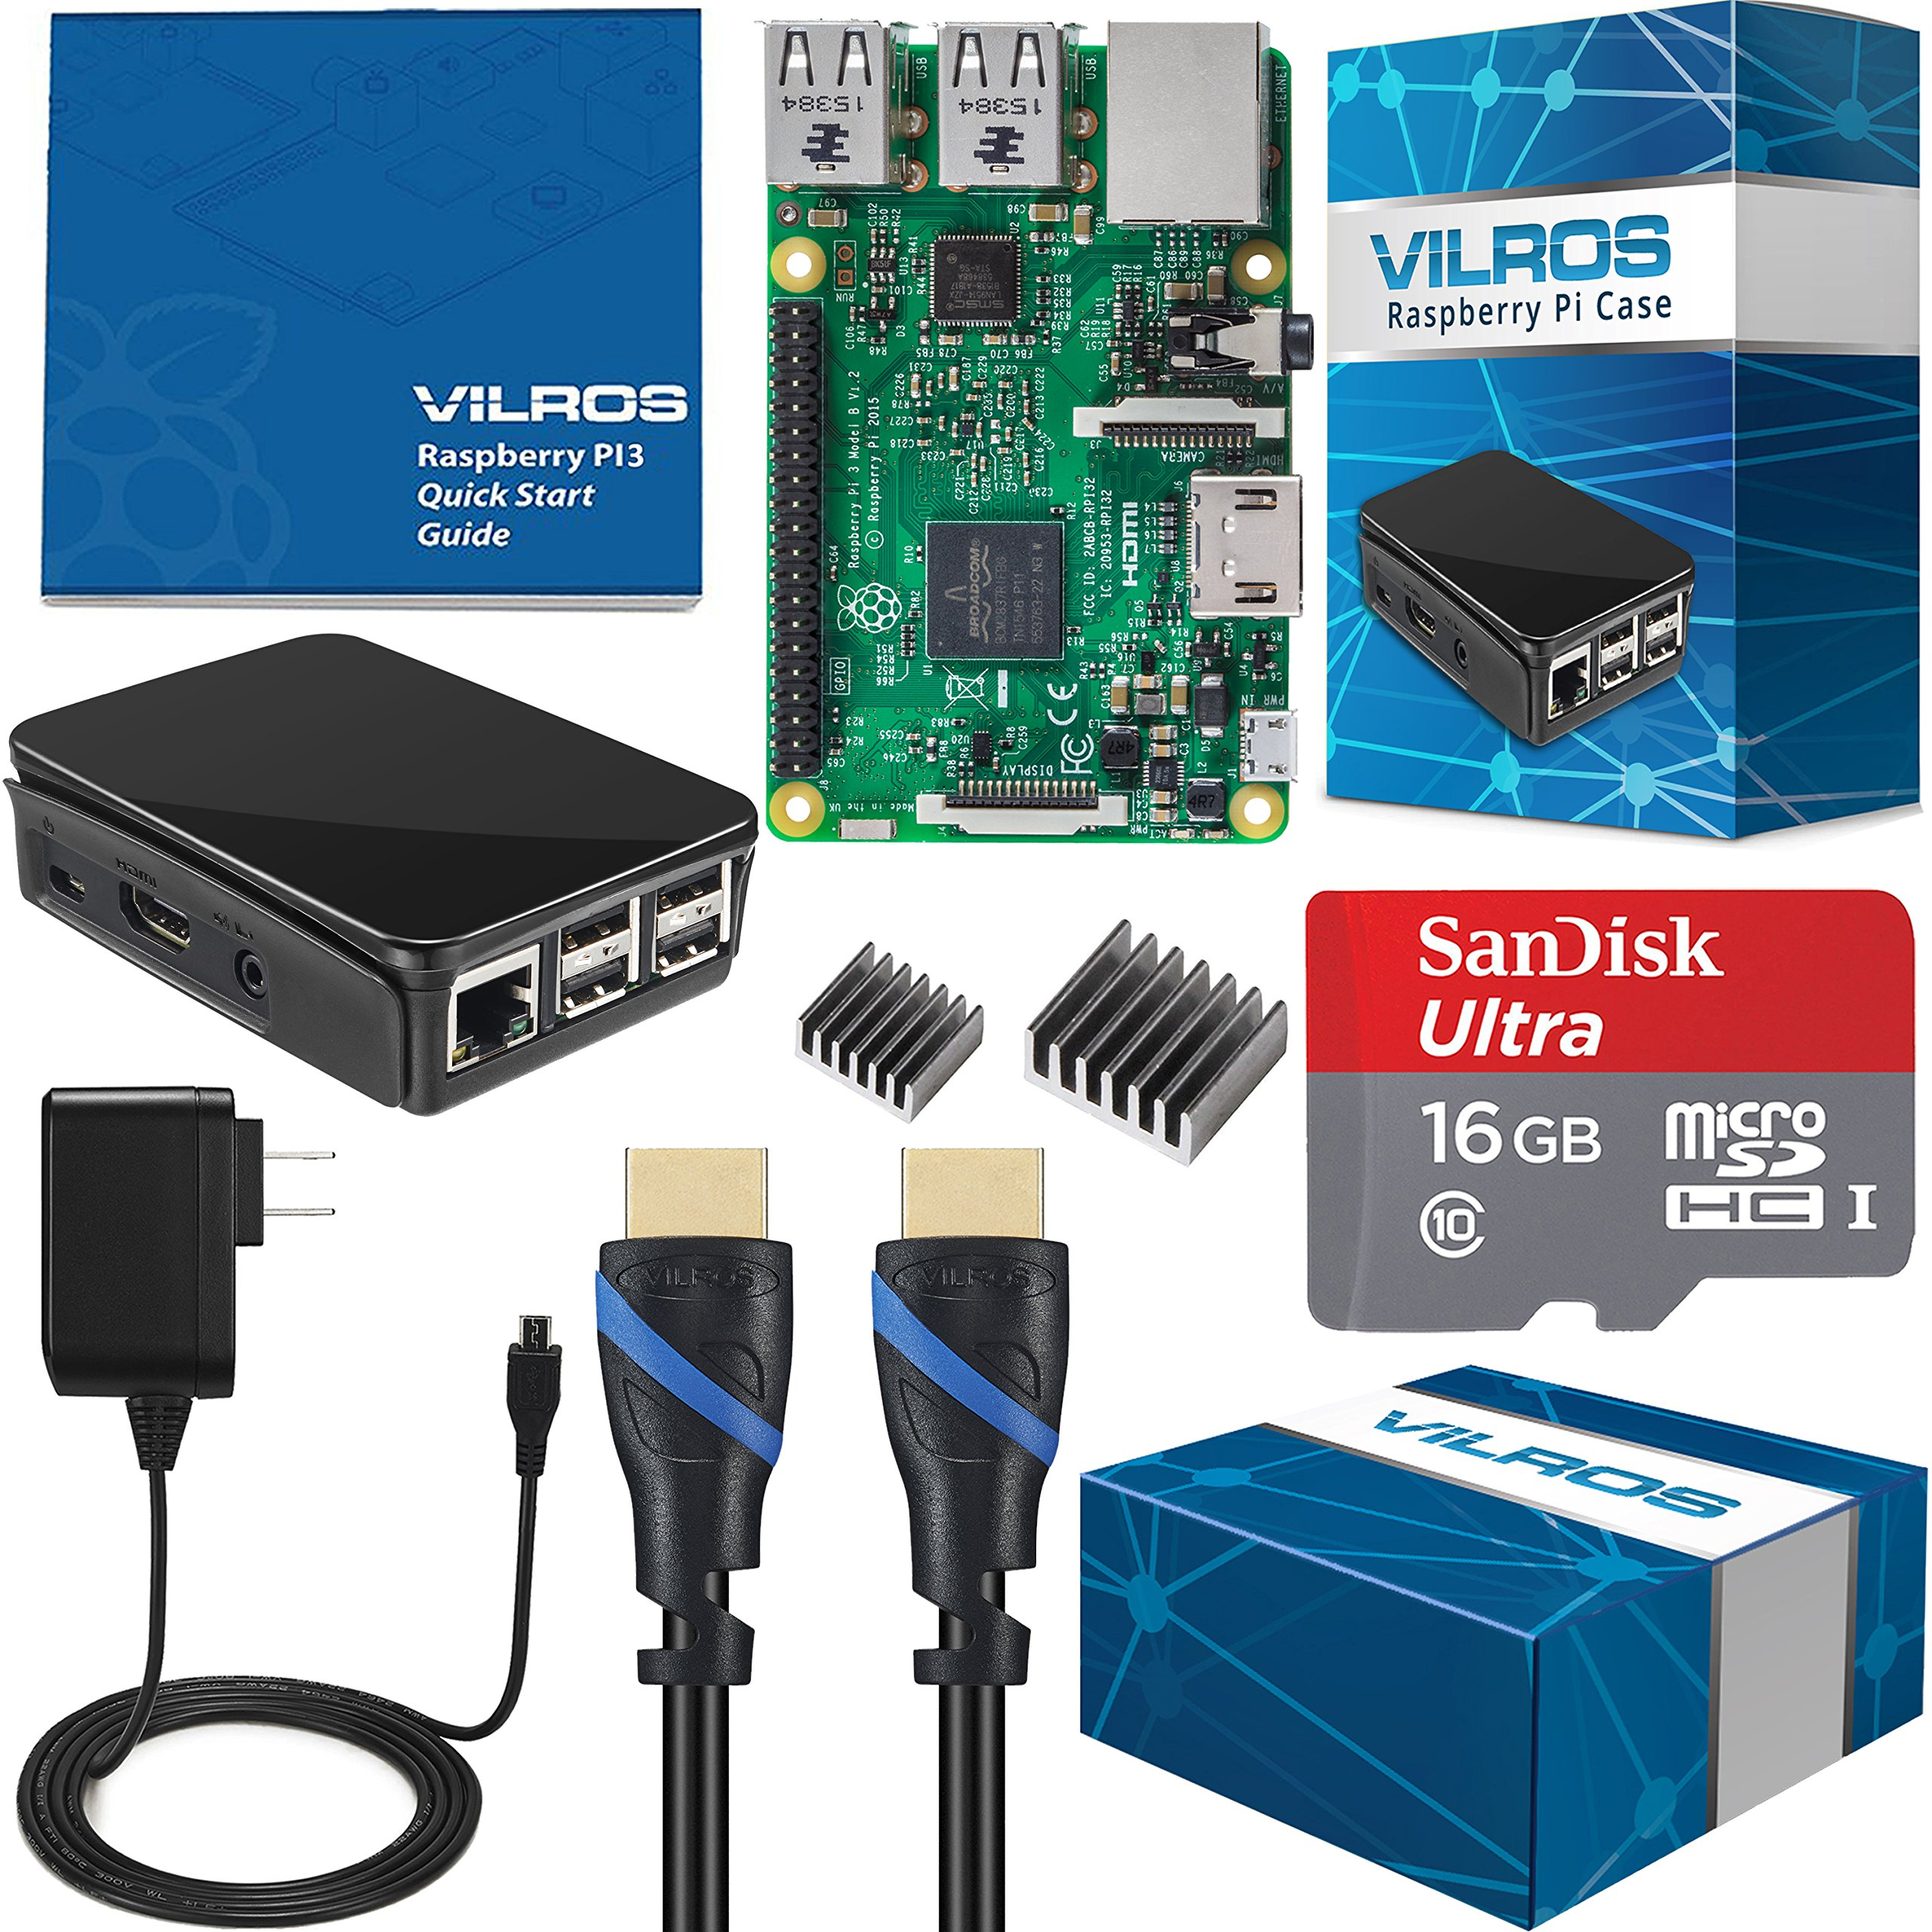 Vilros Raspberry Pi 3 Complete Starter Kit - 16GB Edition